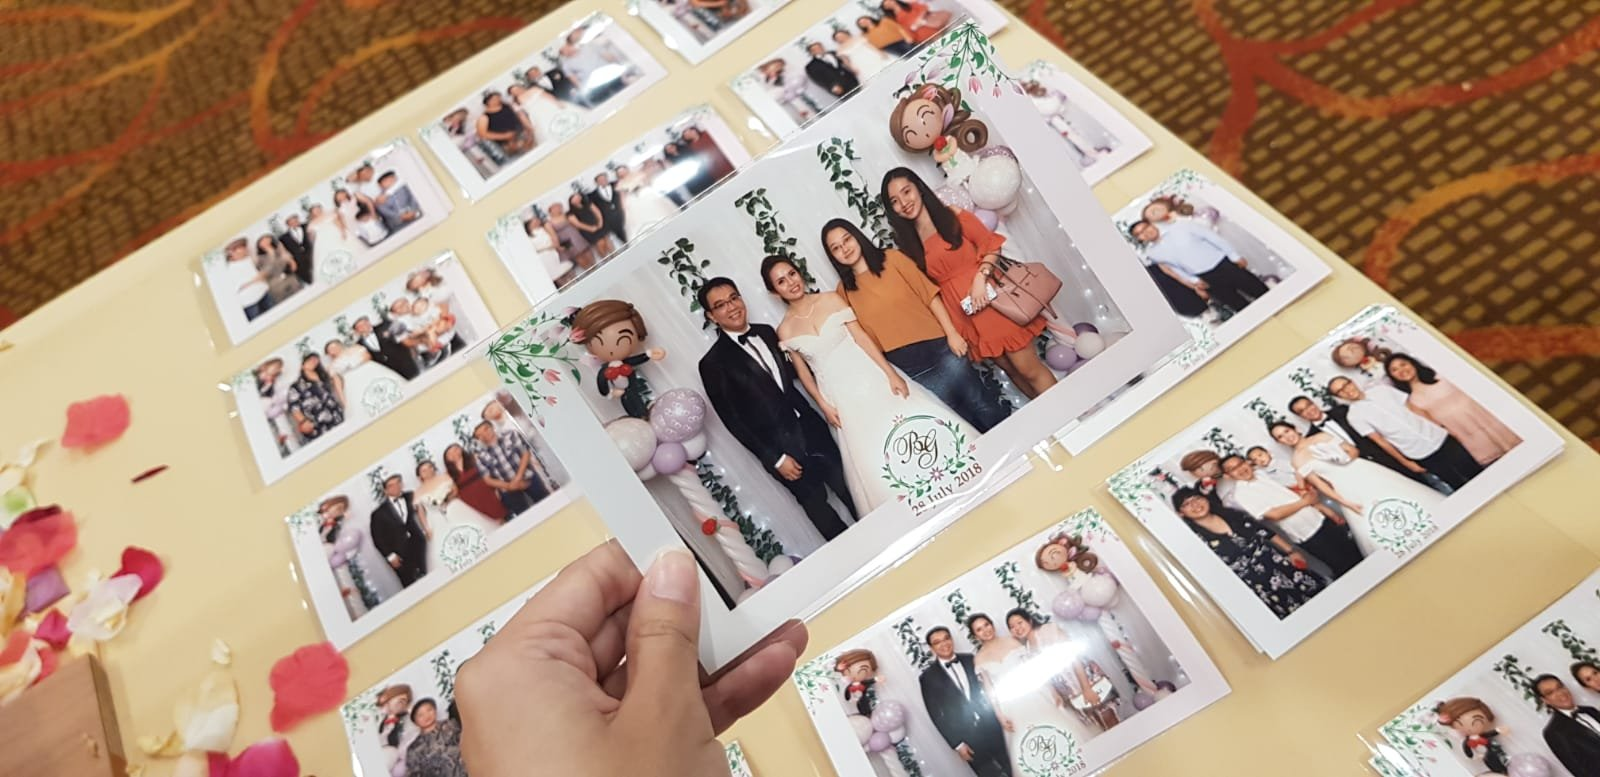 , Singapore instant print photobooth service, Singapore Balloon Decoration Services - Balloon Workshop and Balloon Sculpting